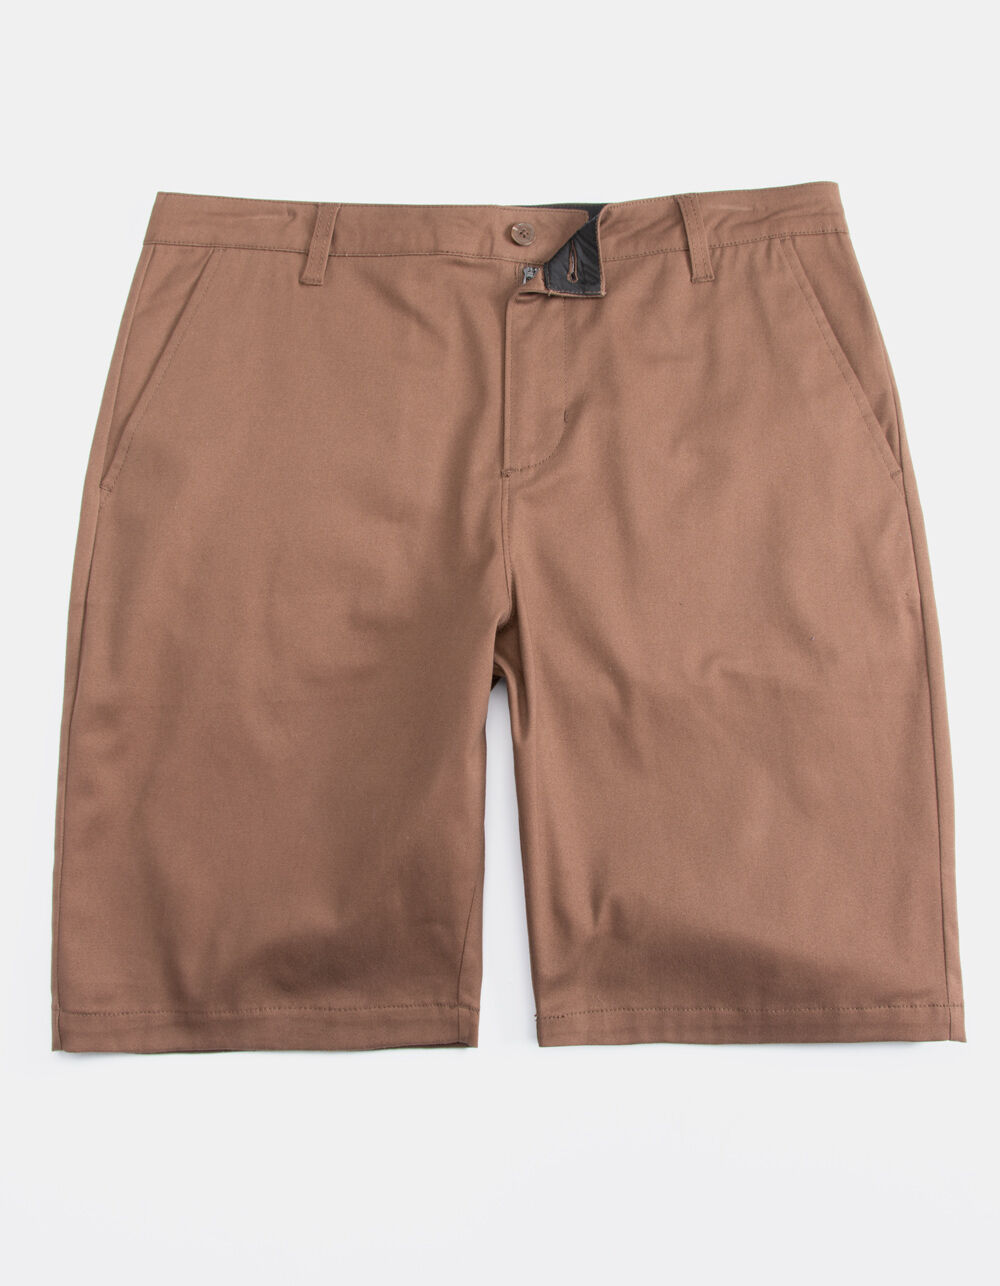 BLUE CROWN Classic Brown Chino Shorts